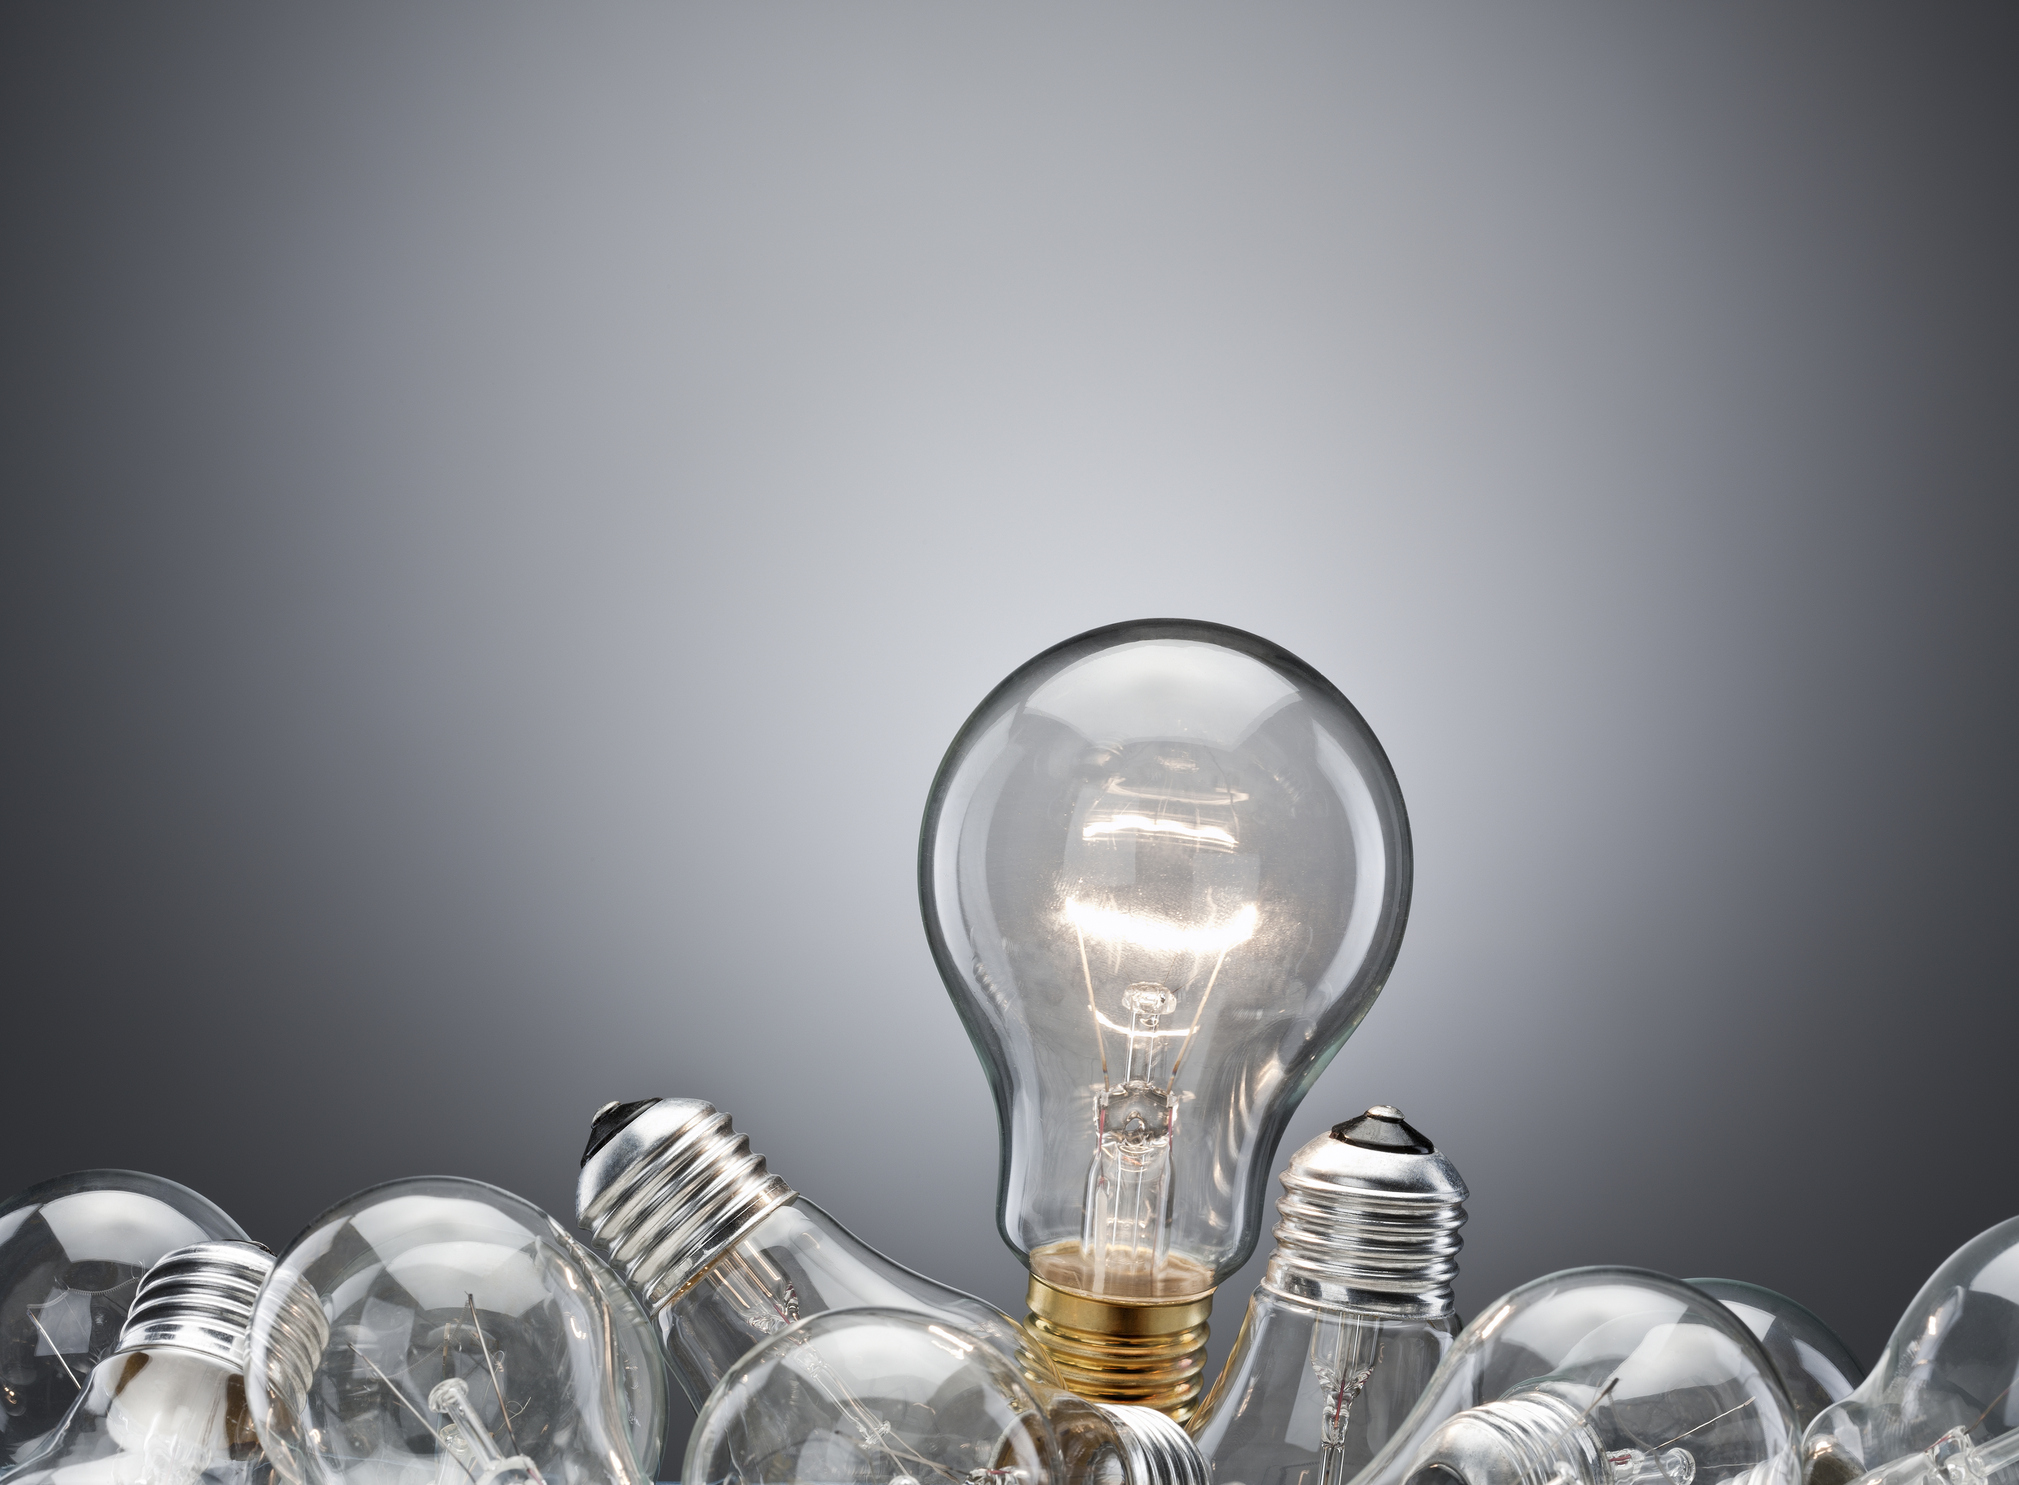 Illuminated light bulb in pile